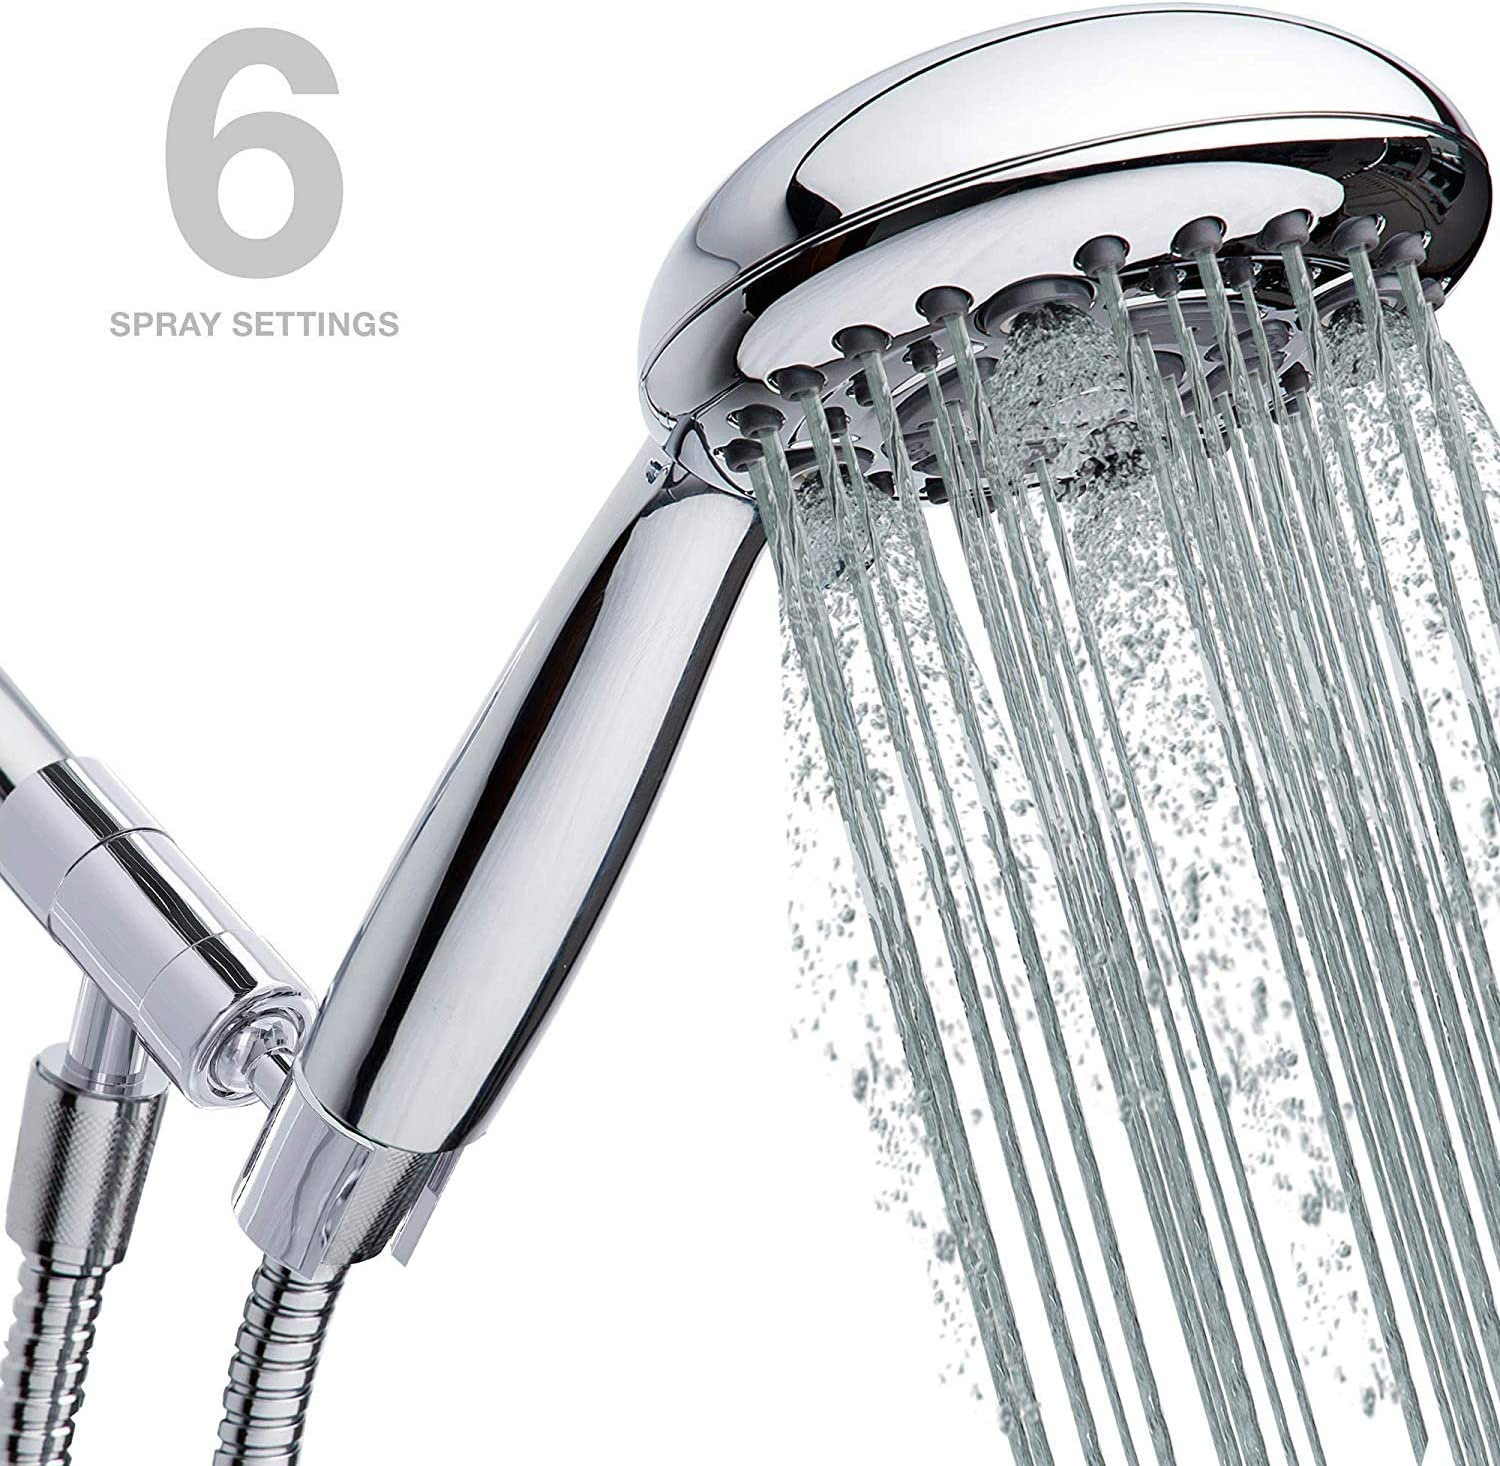 High Pressure Handheld Shower Head 6-Setting - Chrome Hand held Rain Shower with Extra Long 70 inch Steel Shower Hose and 100% Metal Shower Head Holder for Hand Held Shower Heads